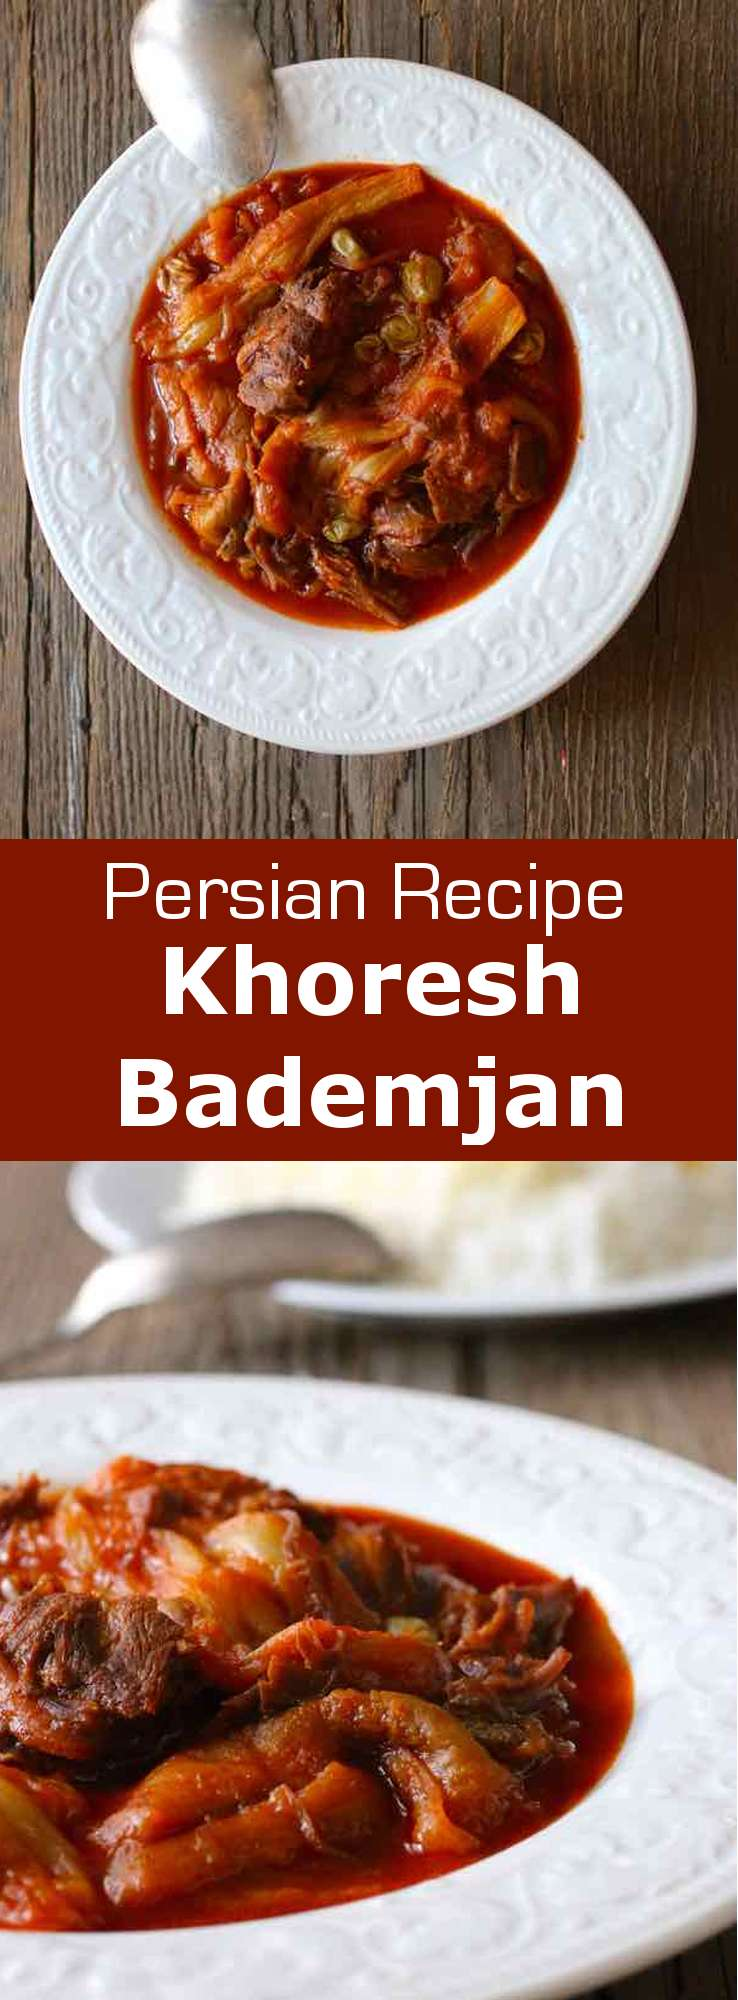 Khoresh bademjan is a deliciously balanced Persian stew that is prepared with eggplants, as well as lamb or beef and tomatoes. #Persian #Iranian #PersianCuisine #PersianDish #PersianRecipe #IranianCuisine #IranianDish #IranianRecipe #Khoresh #Stew #PersianStew #WorldCuisine #MiddleEasternCuisine #196flavors